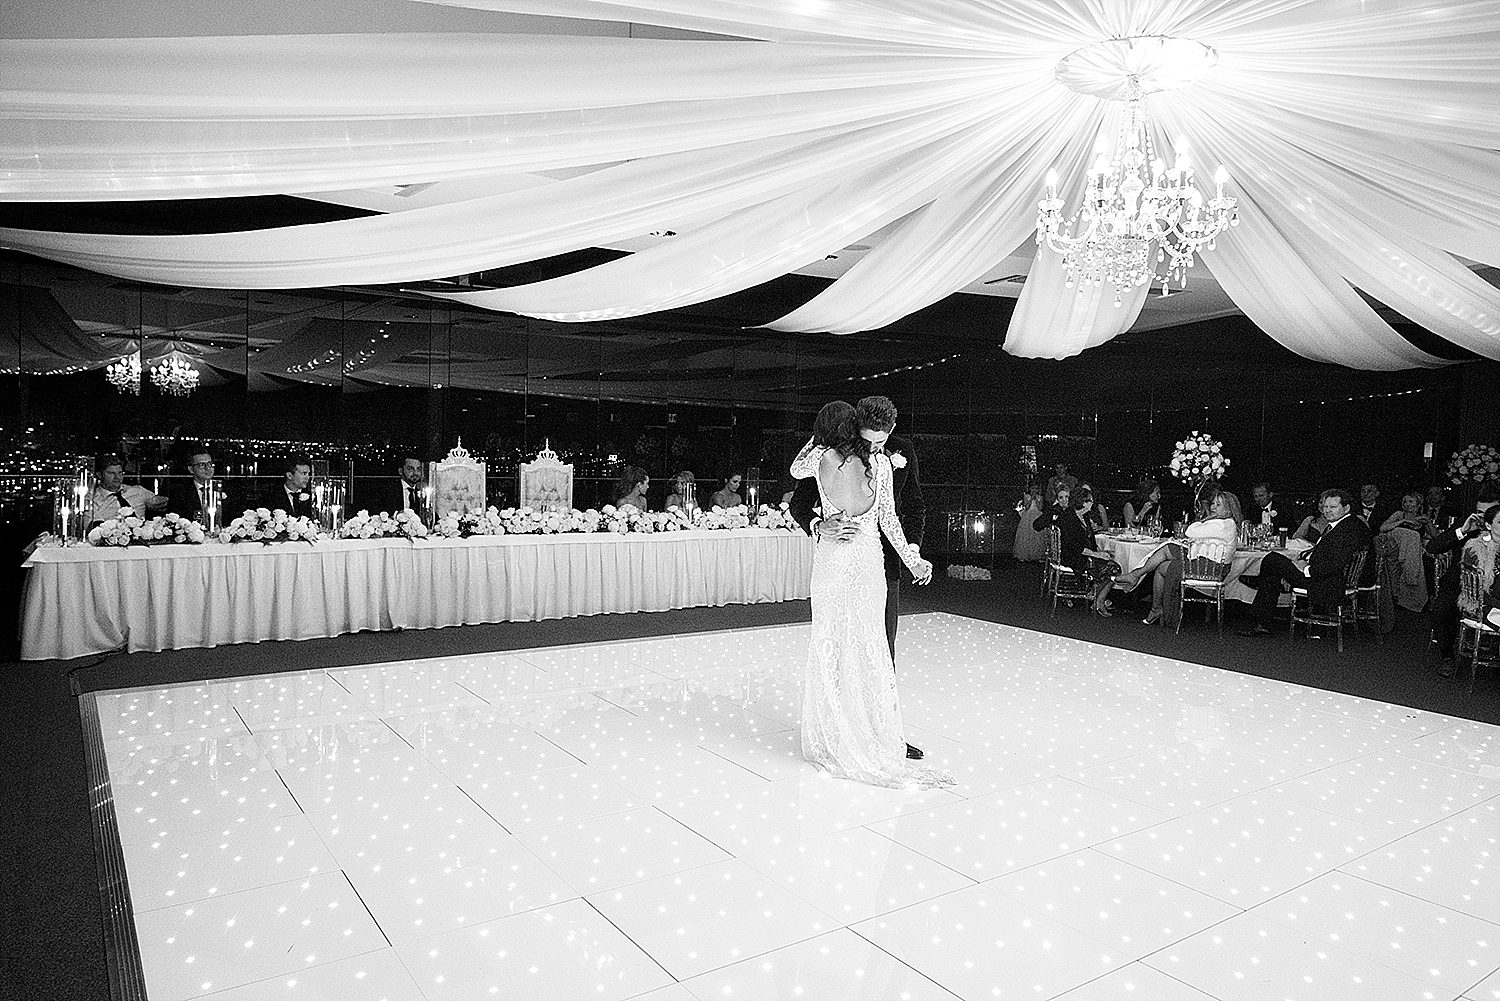 098_bridal dance state reception centre wedding perth.JPG